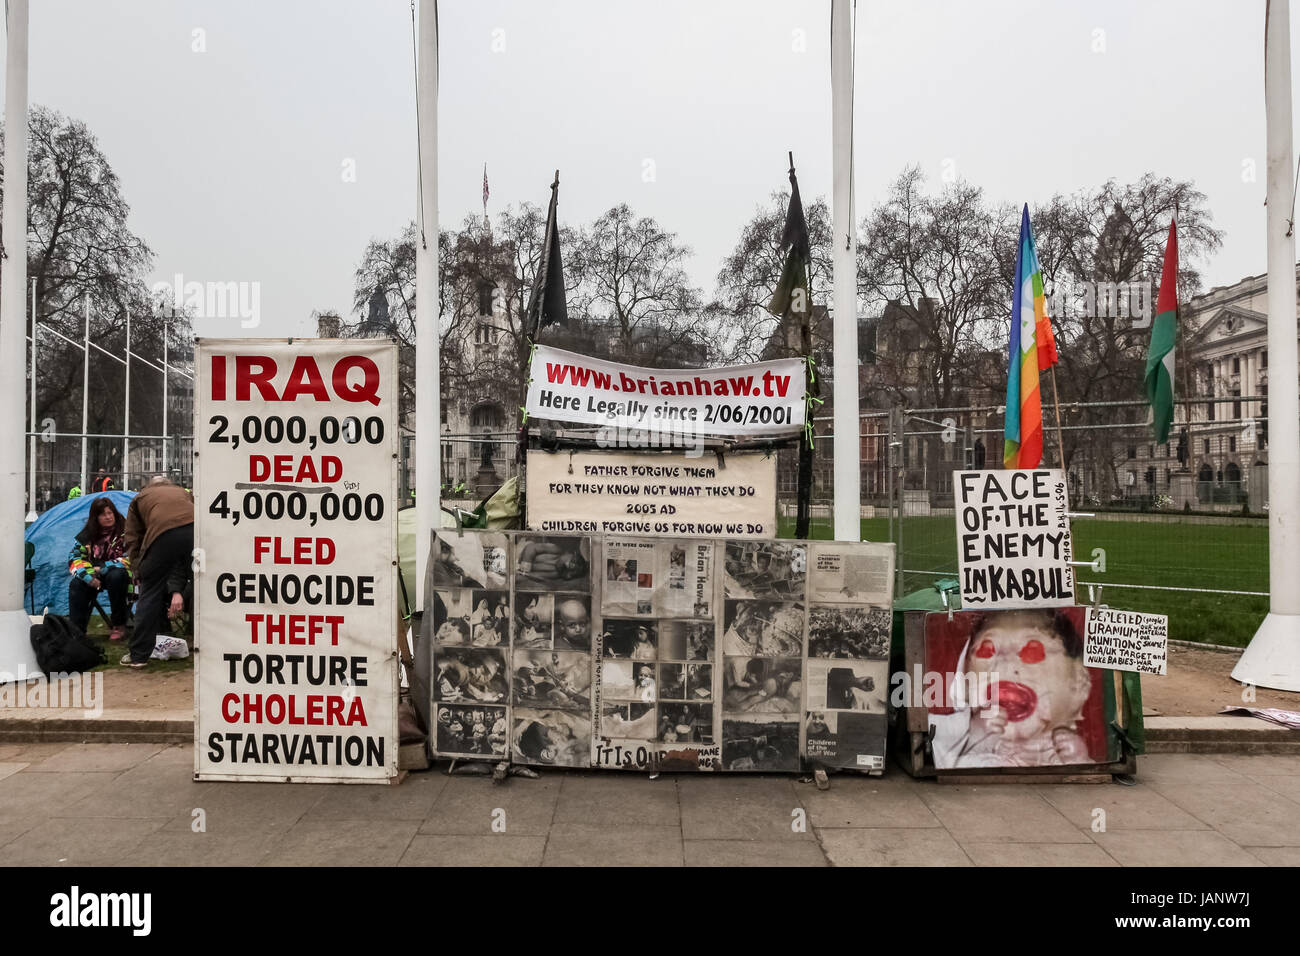 Placards at the peace camp of Brian Haw the long-term anti-war protester in Parliament Square, London, UK. - Stock Image